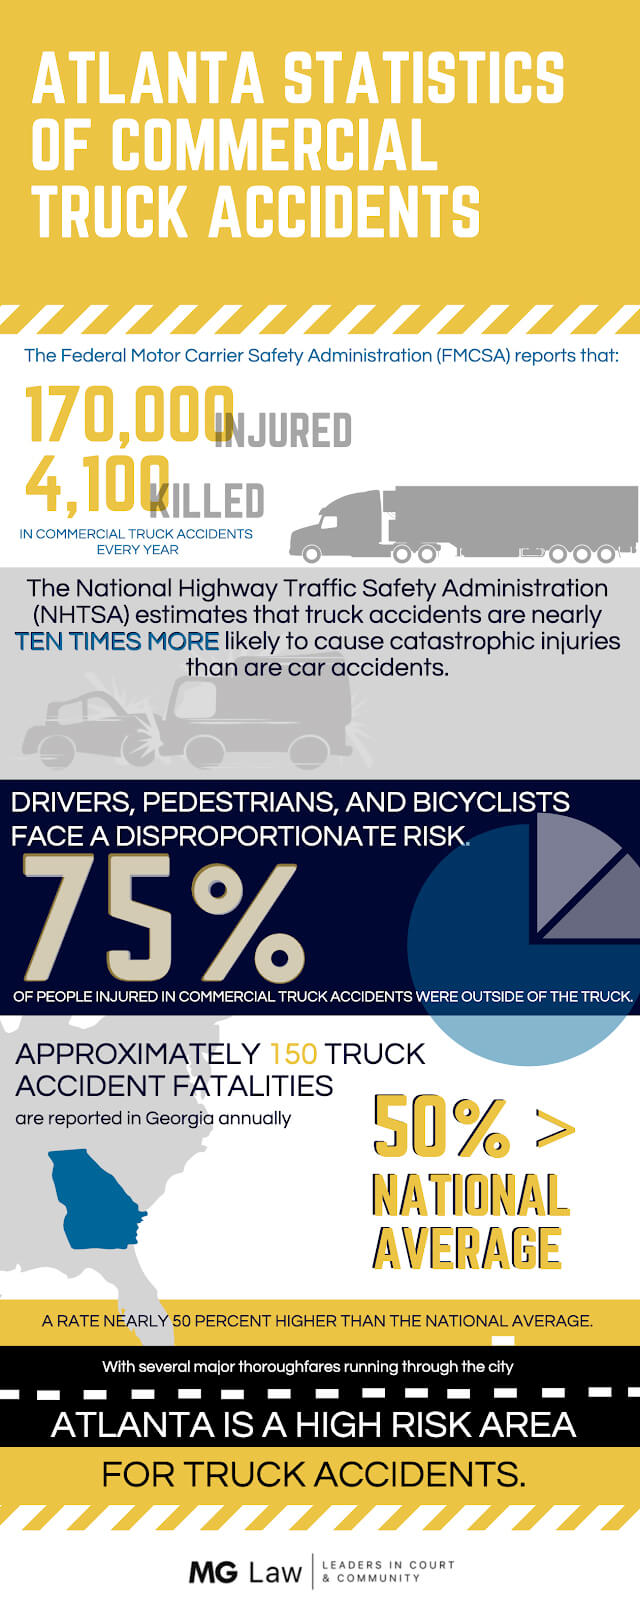 Atlanta-Statistices-of-Commercial-Truck-Accidents-infographic-plaza